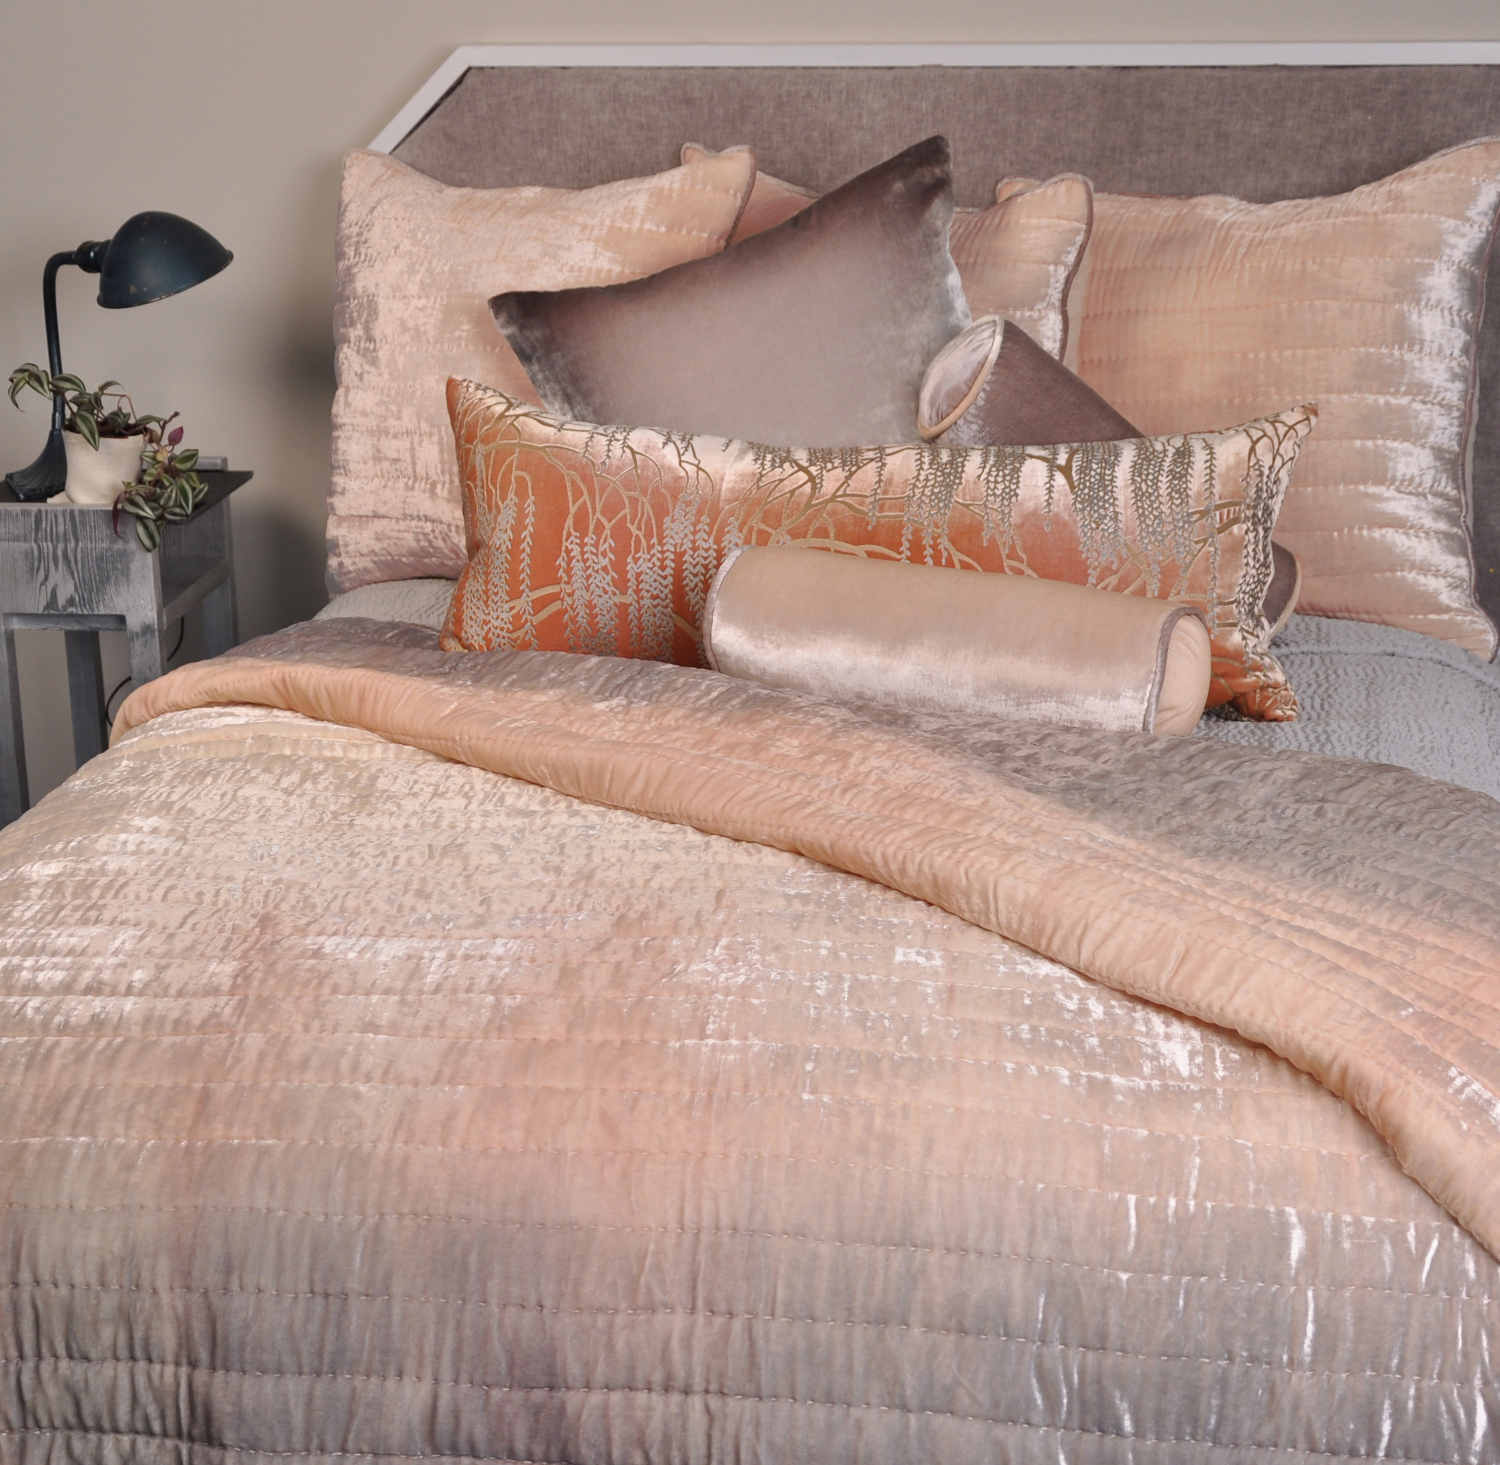 Kevin o 39 brien studio ophelia opal quilted coverlet for Bedroom ideas velvet bed